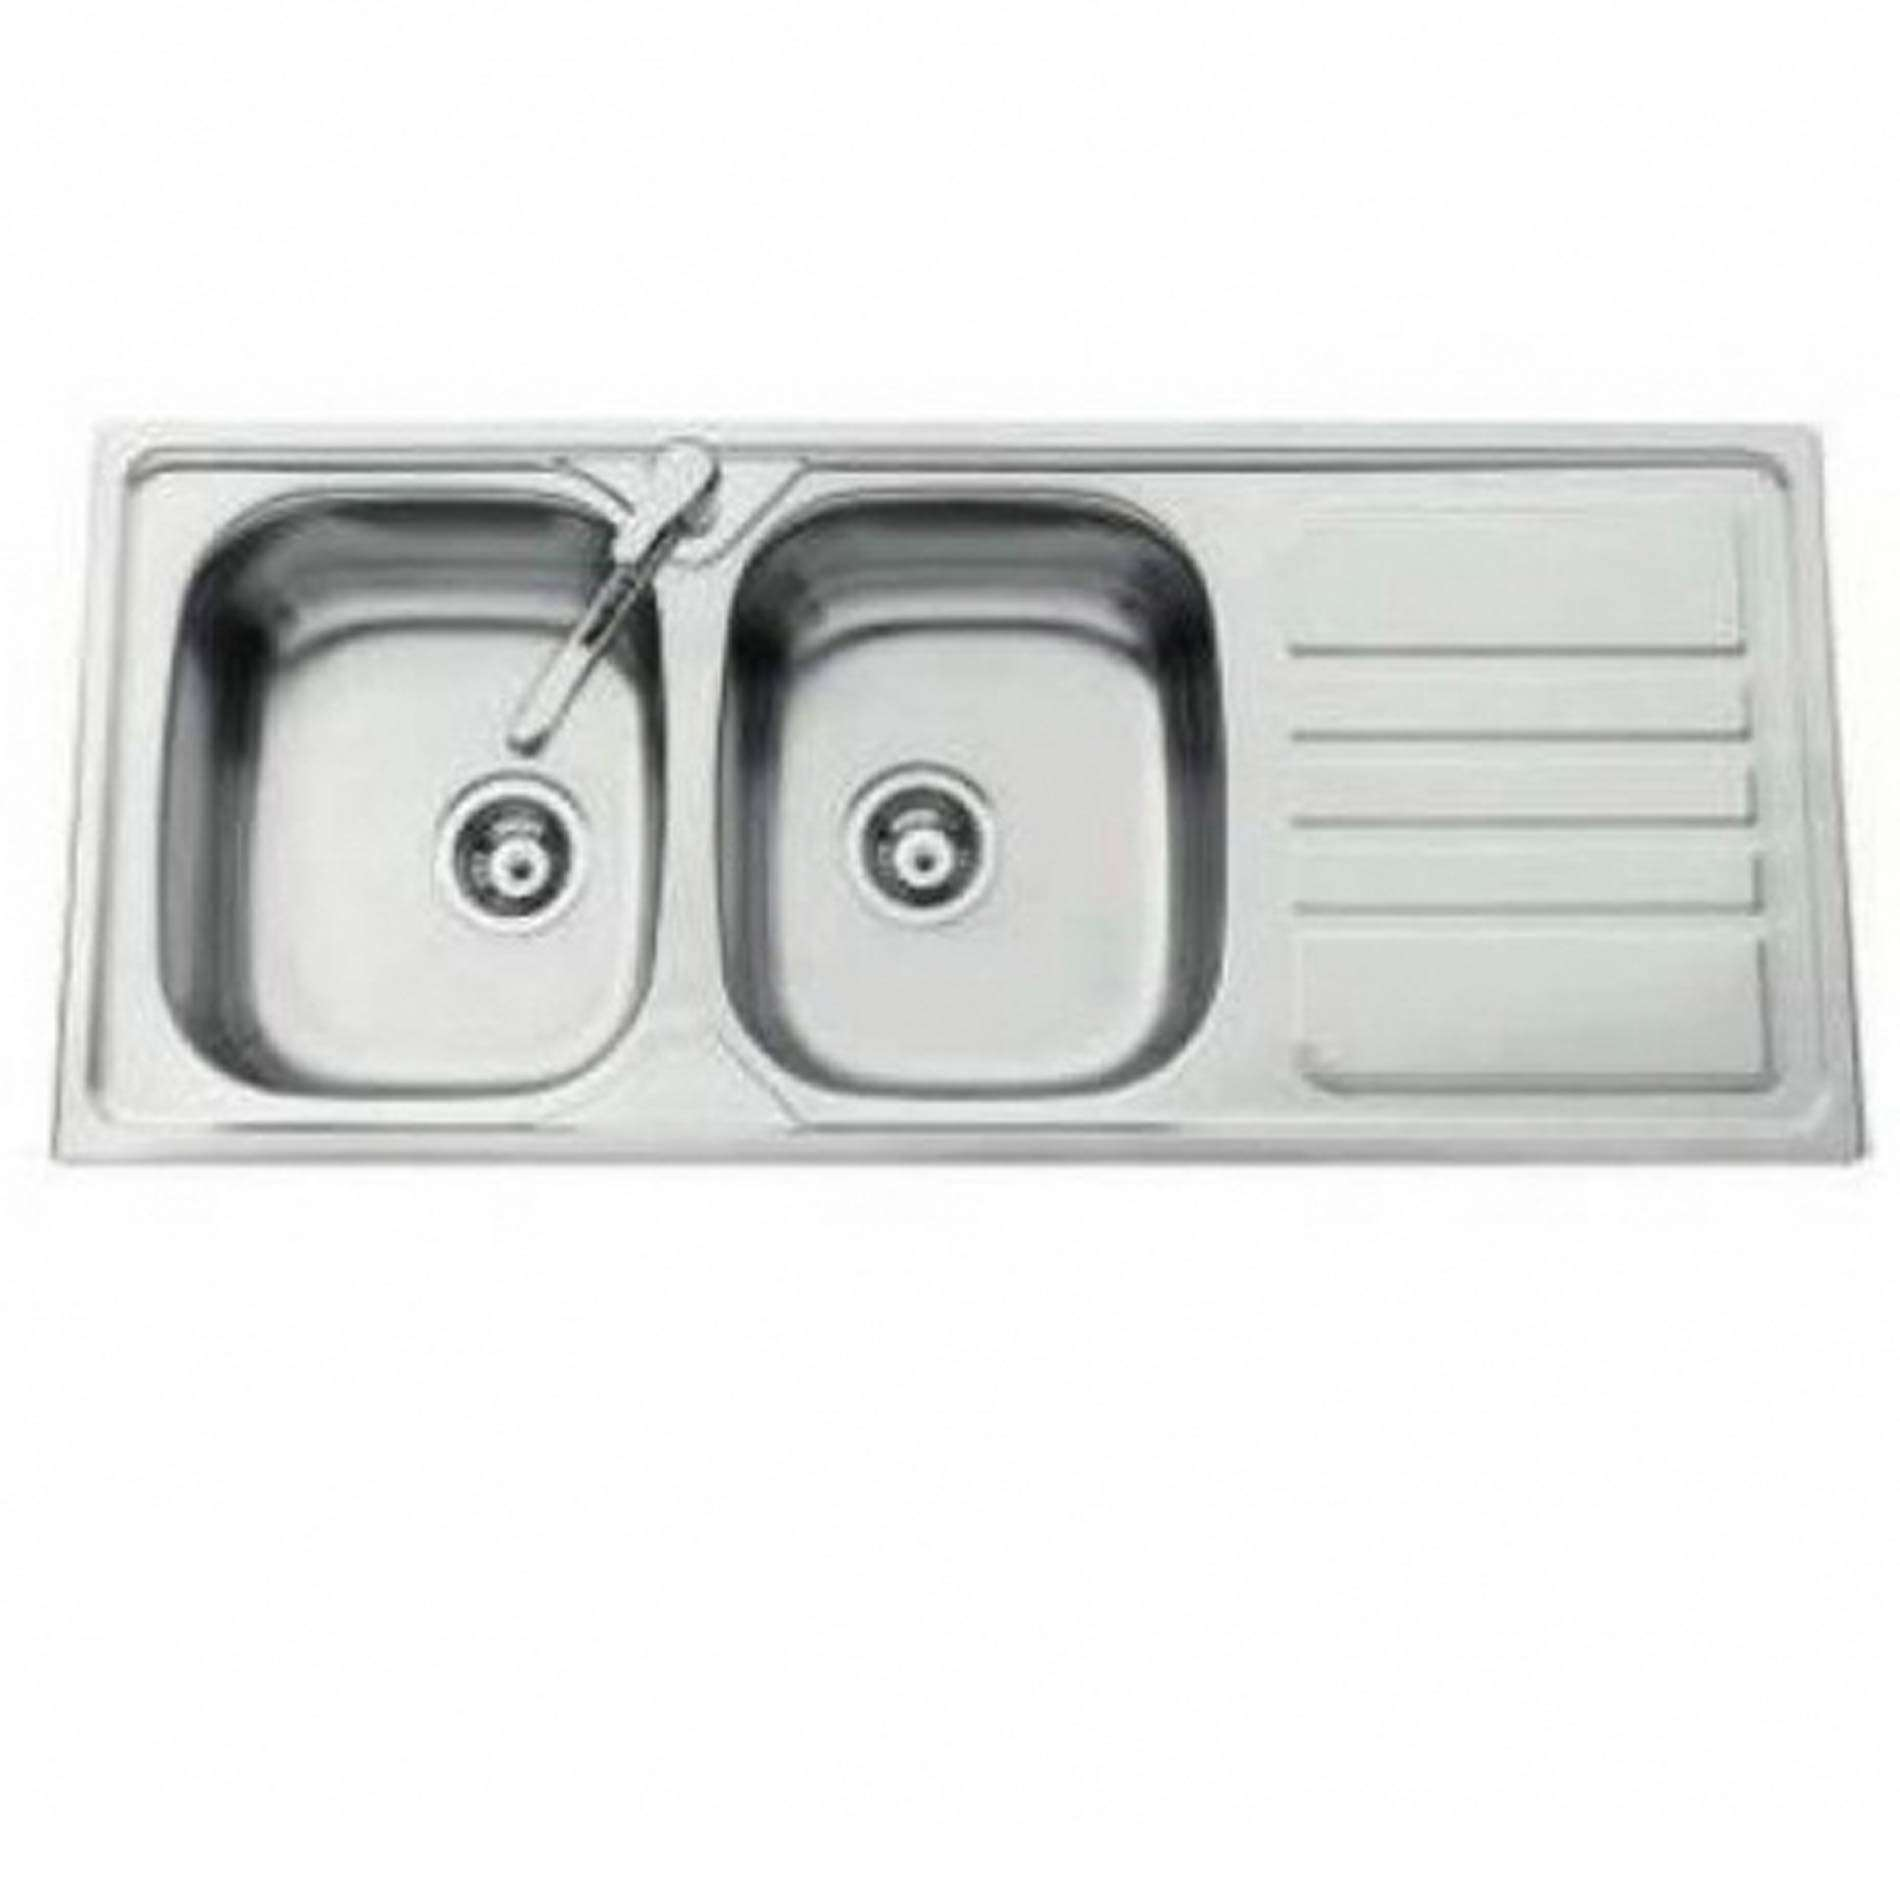 Clearwater Okio Double Bowl Stainless Steel Sink